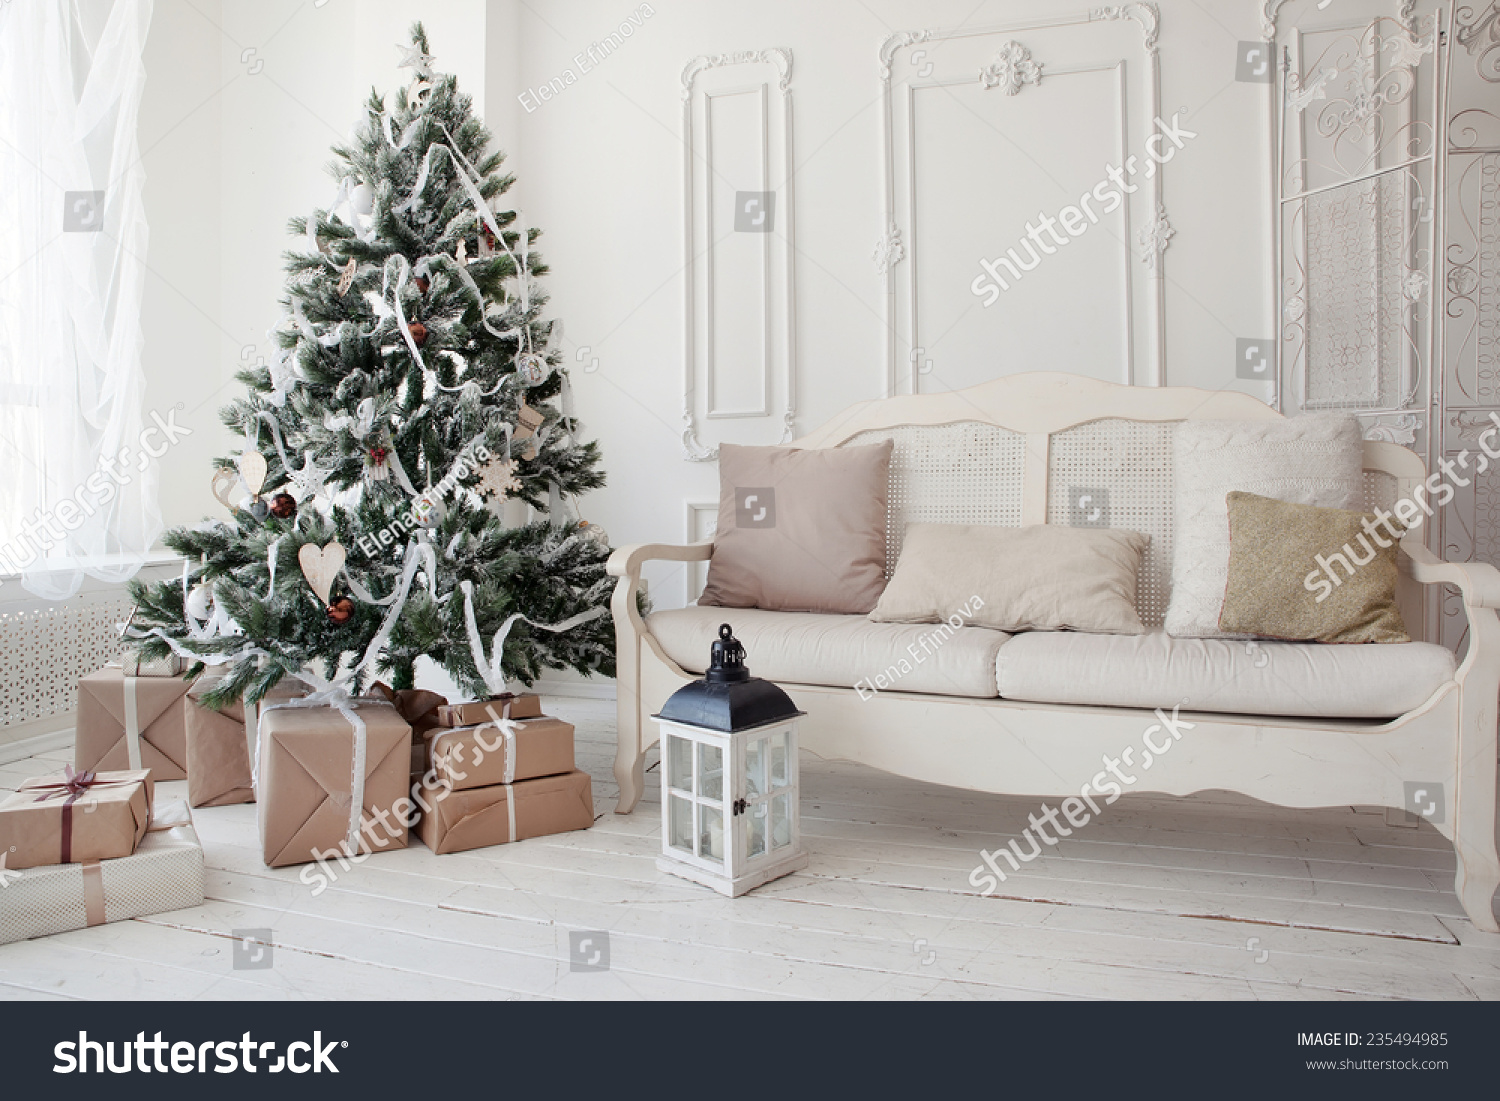 Christmas Tree Presents Underneath Living Room Stock Photo (Download ...